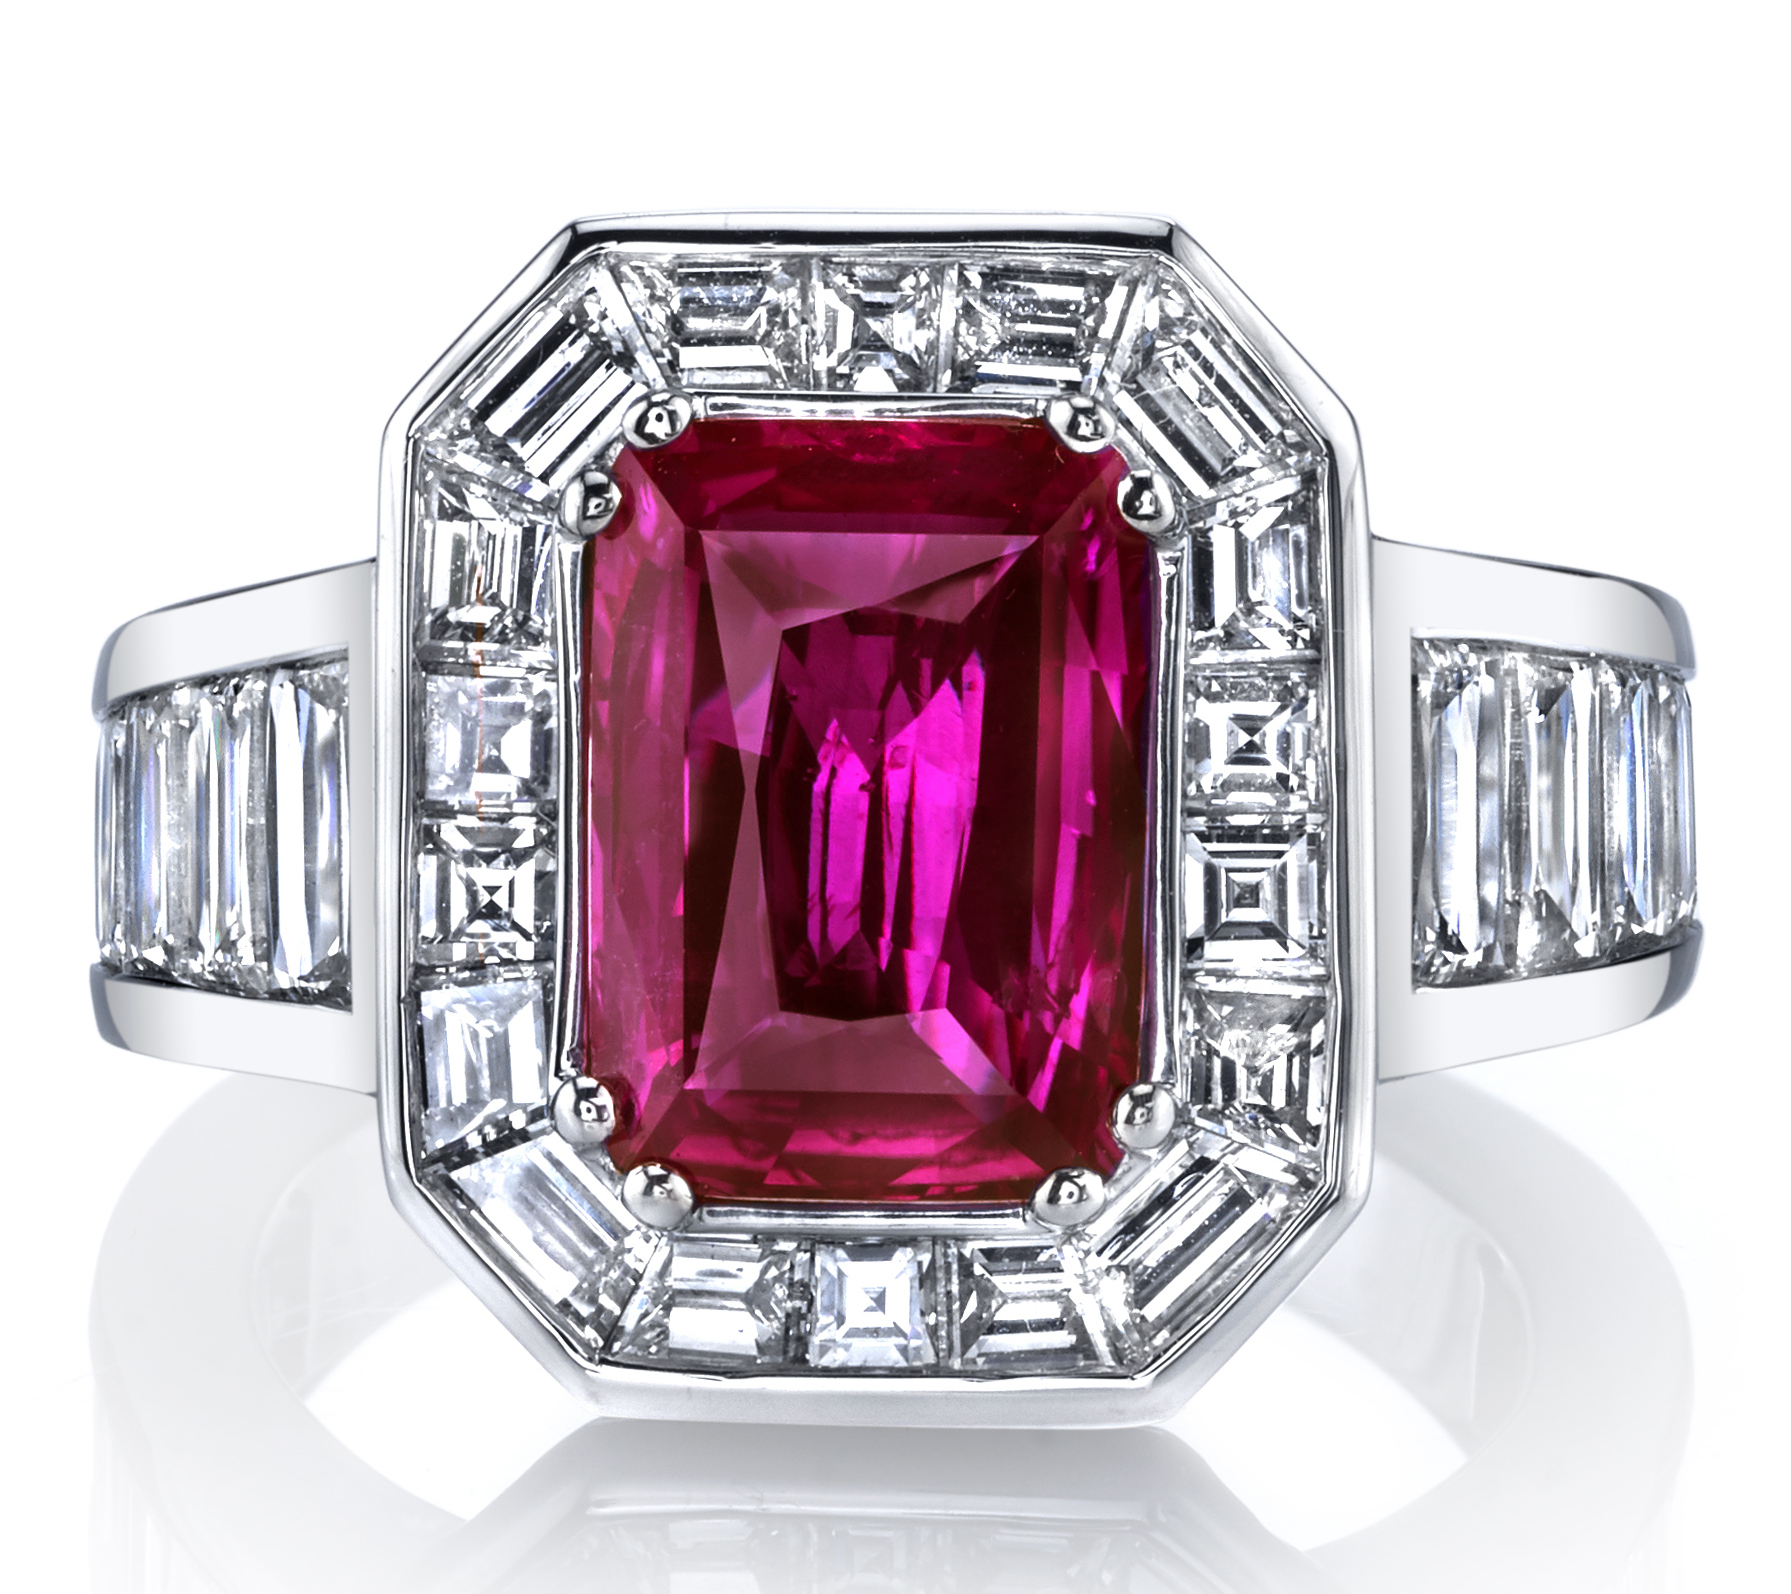 Joshua J emerald-cut pink sapphire ring | JCK On Your Market